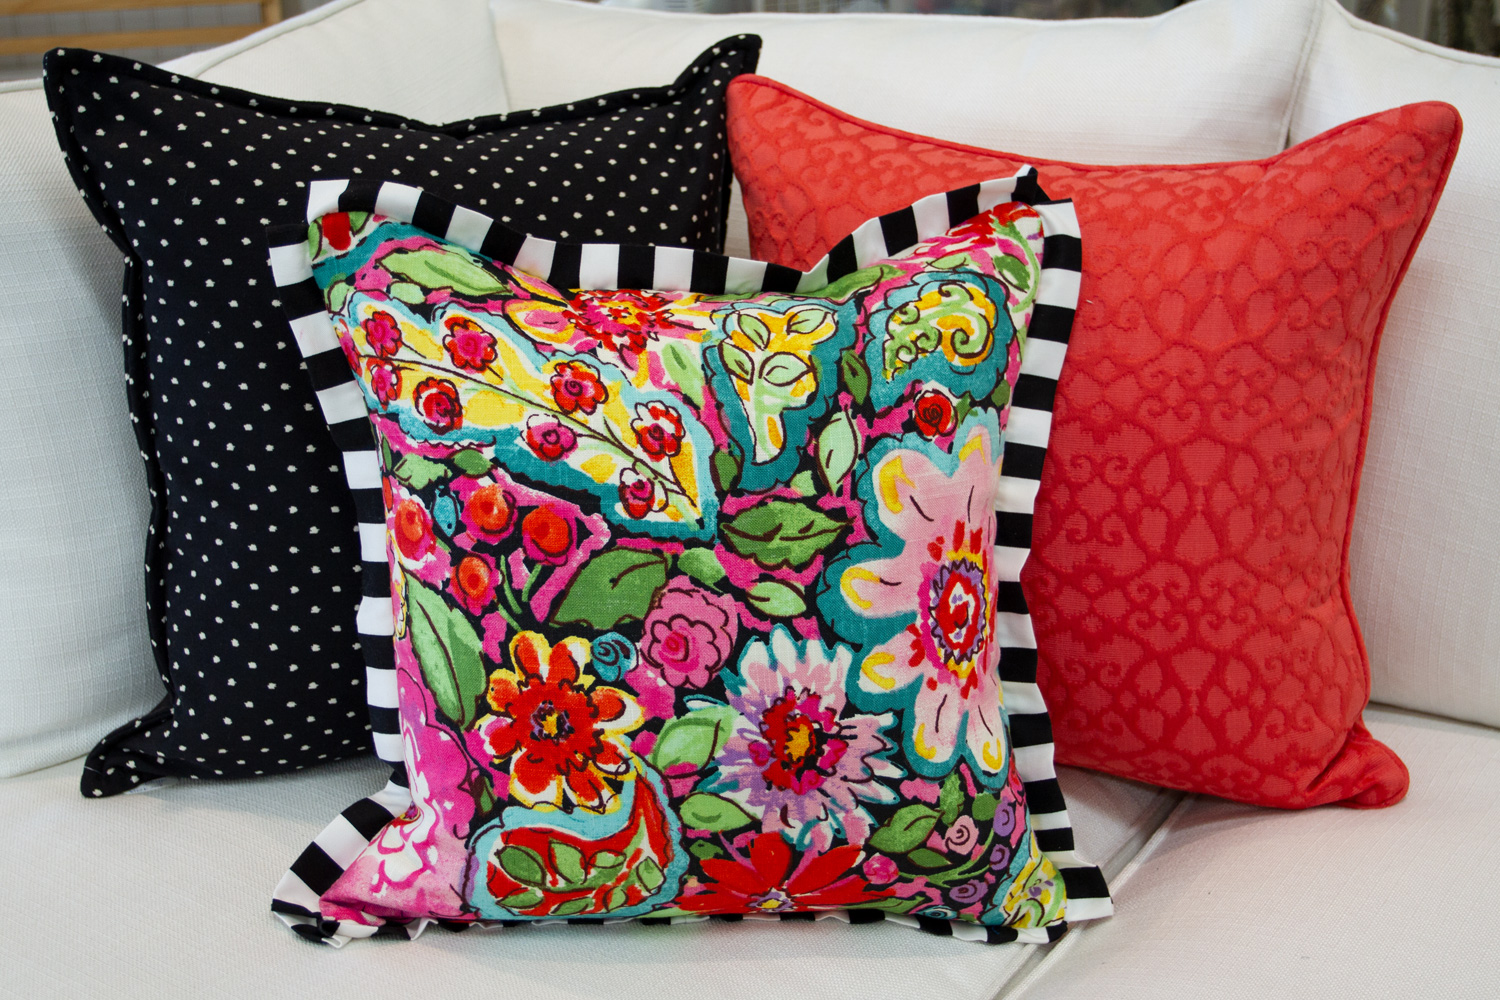 Chameleon Style 12 Days Of Pillows 2018 Just For Me Day 12 Chameleon Style